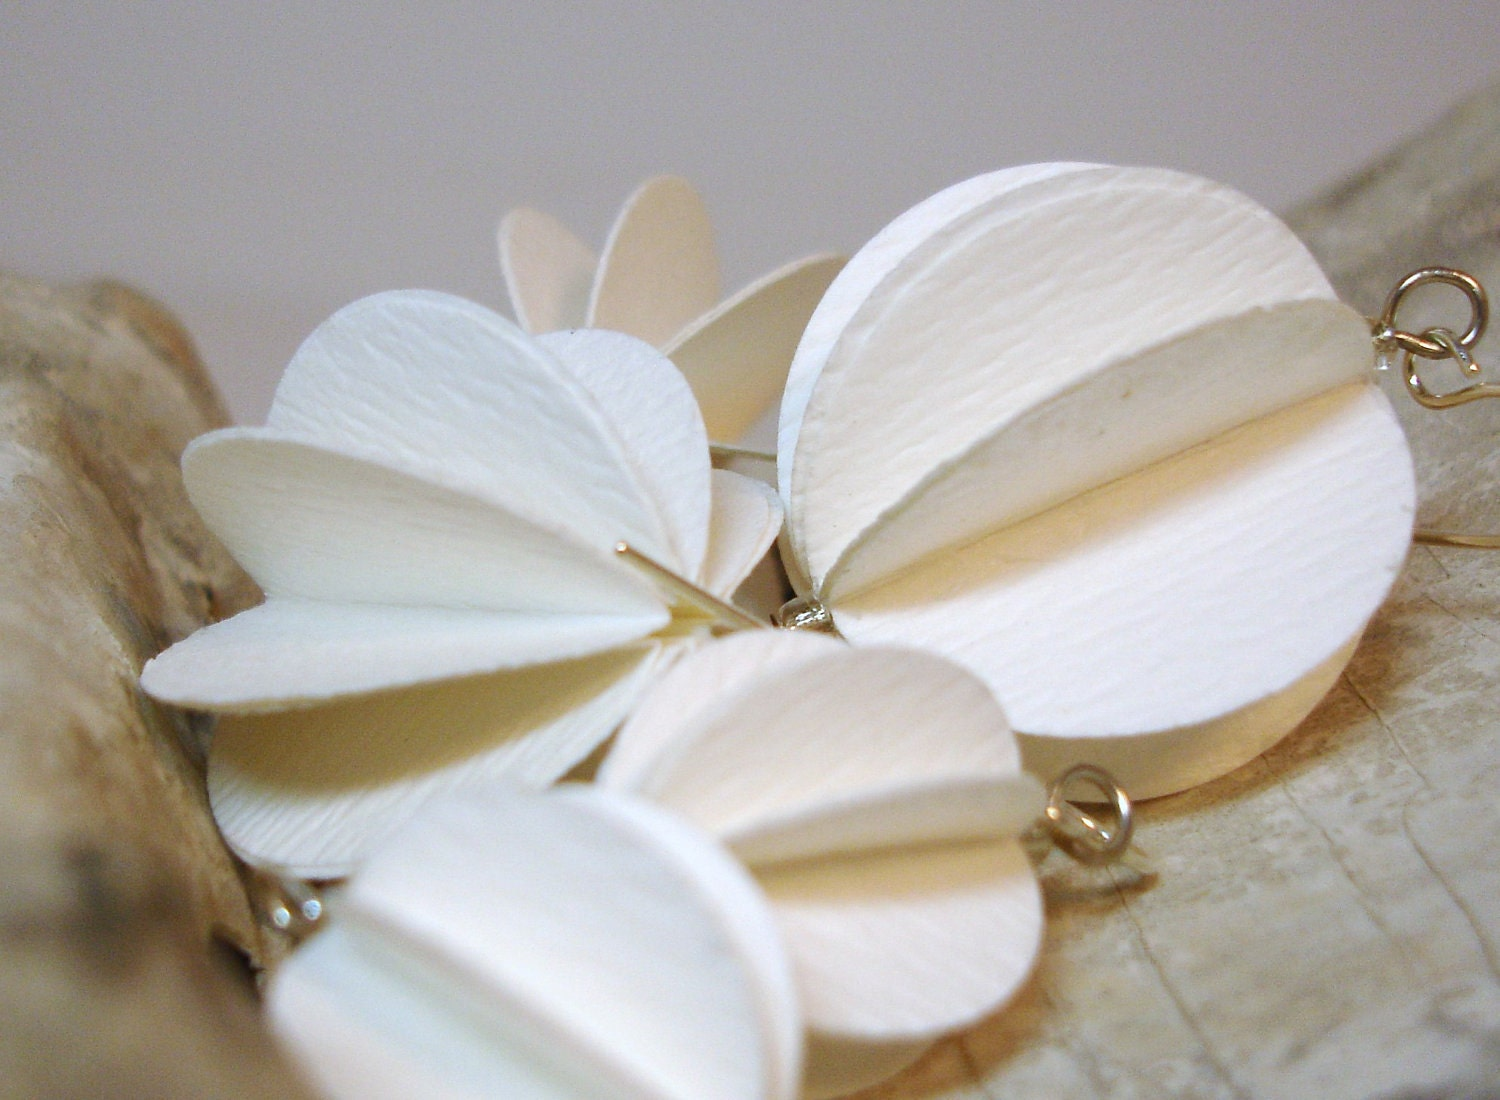 Creamy White paper orb earrings on silver wires, 2 sizes available